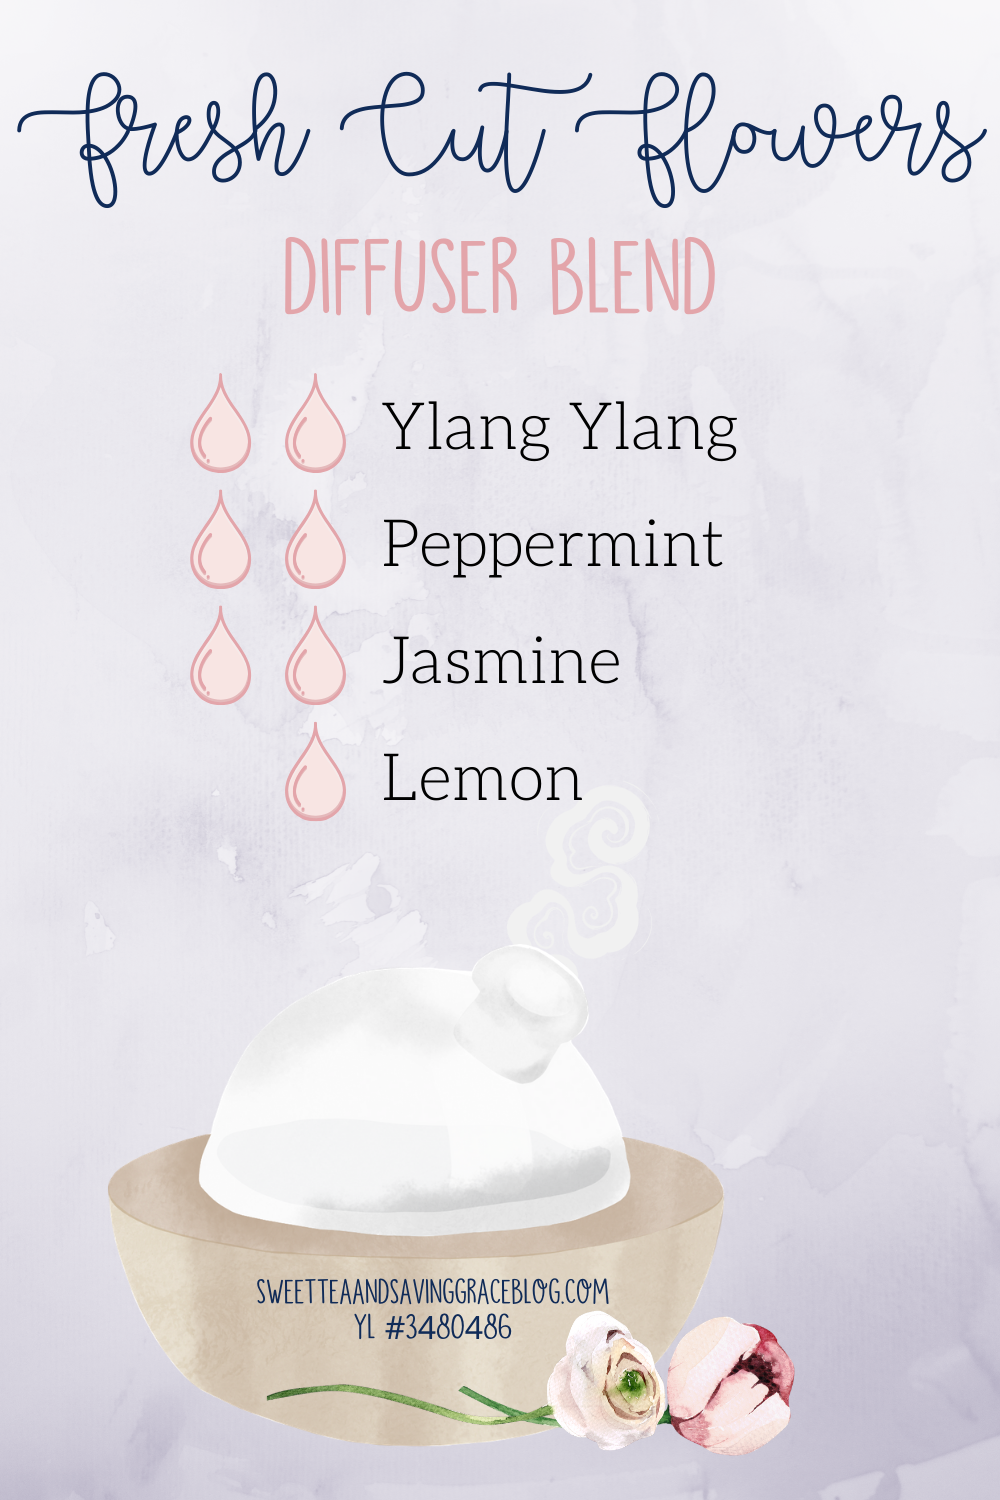 mother's day wellness gift guide young living essential oil diffuser blend fresh cut flowers